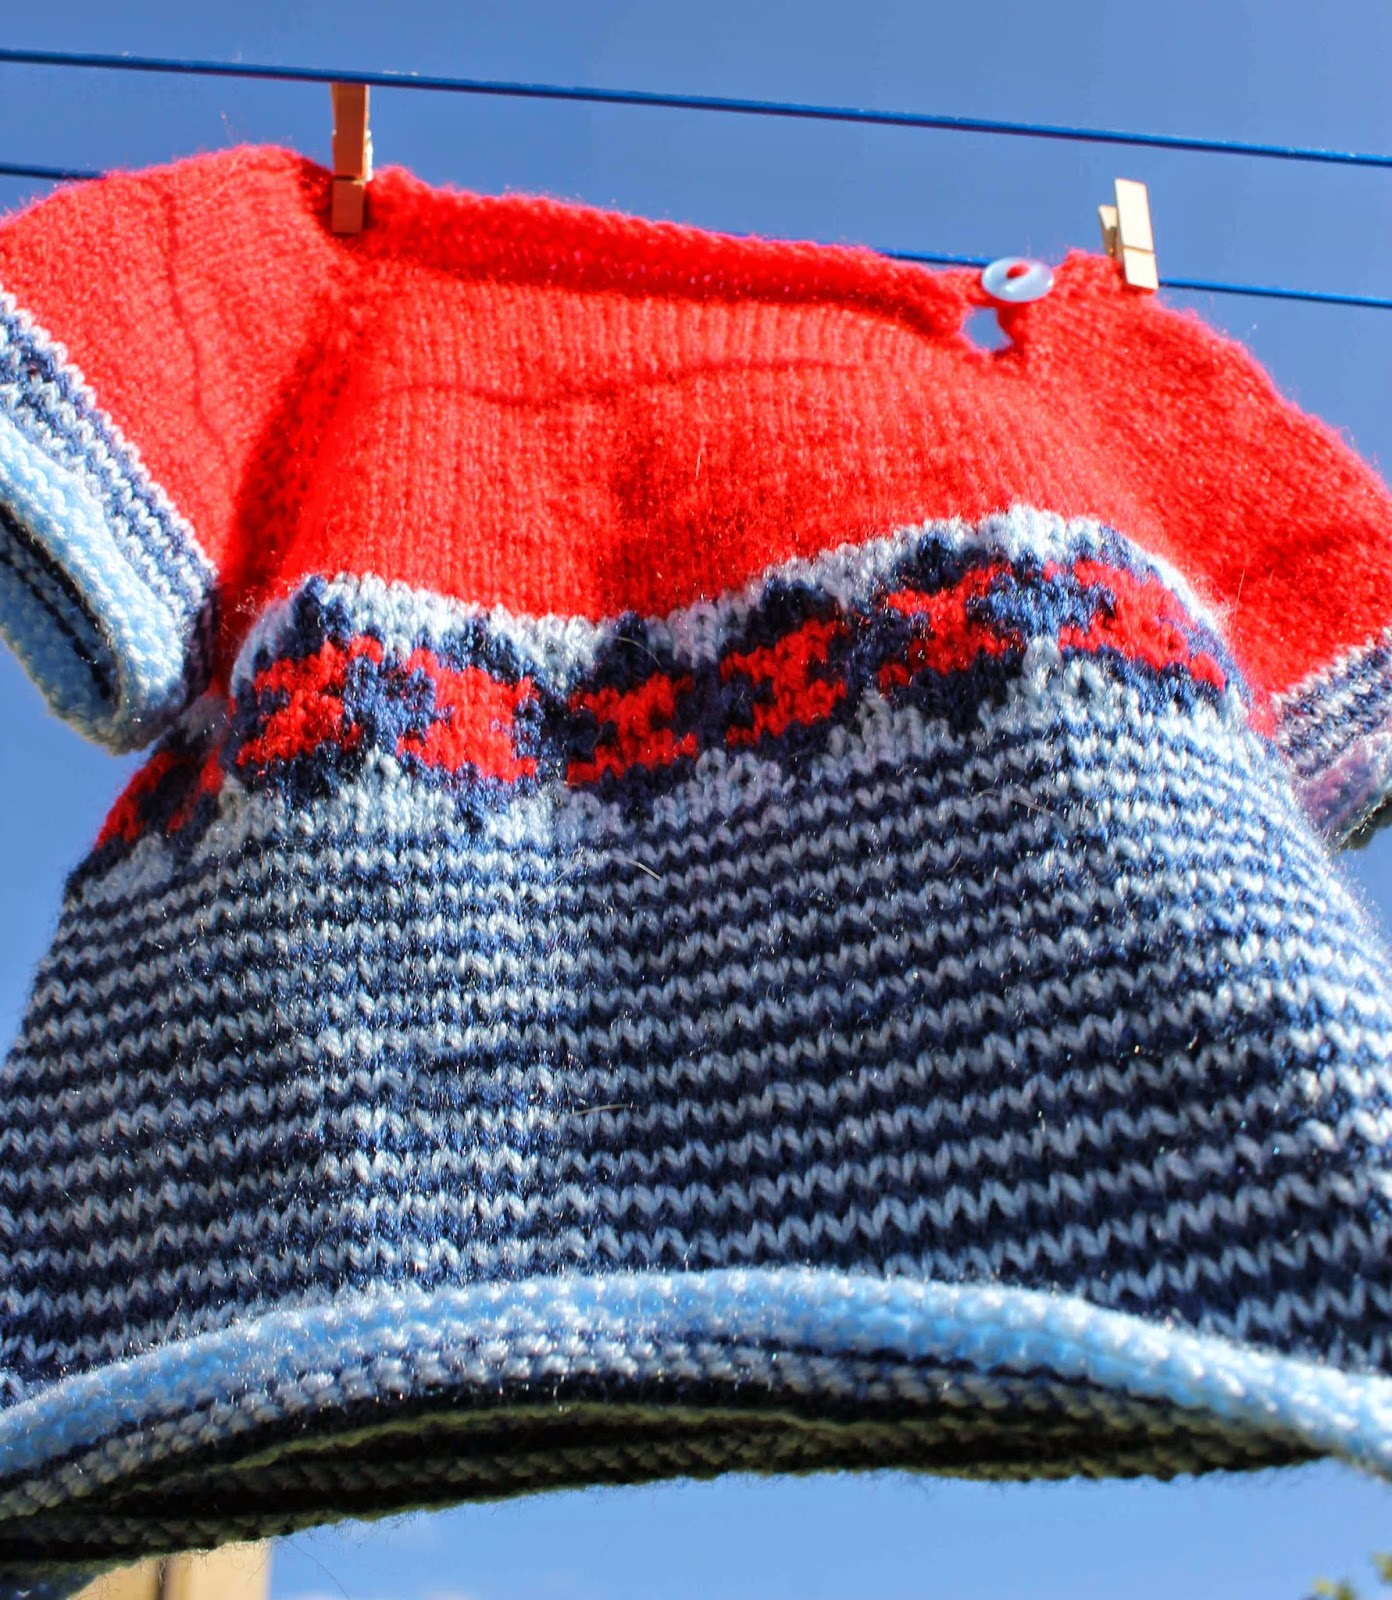 Red and blue striped and patterned knitted jumper